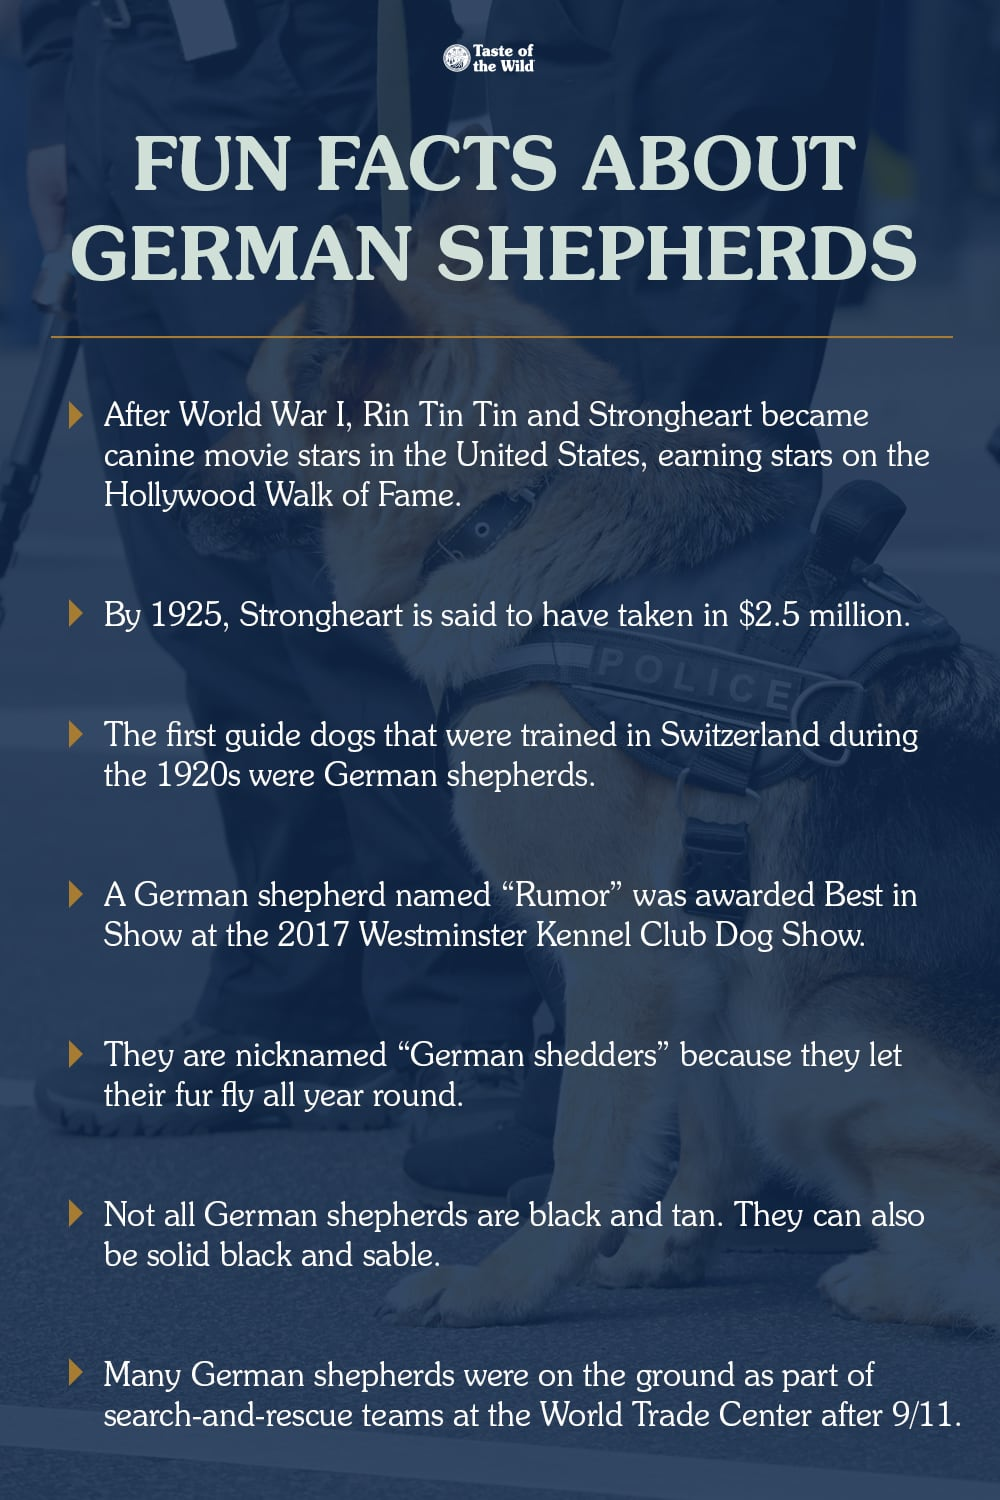 Fun Facts About German Shepherds List | Taste of the Wild